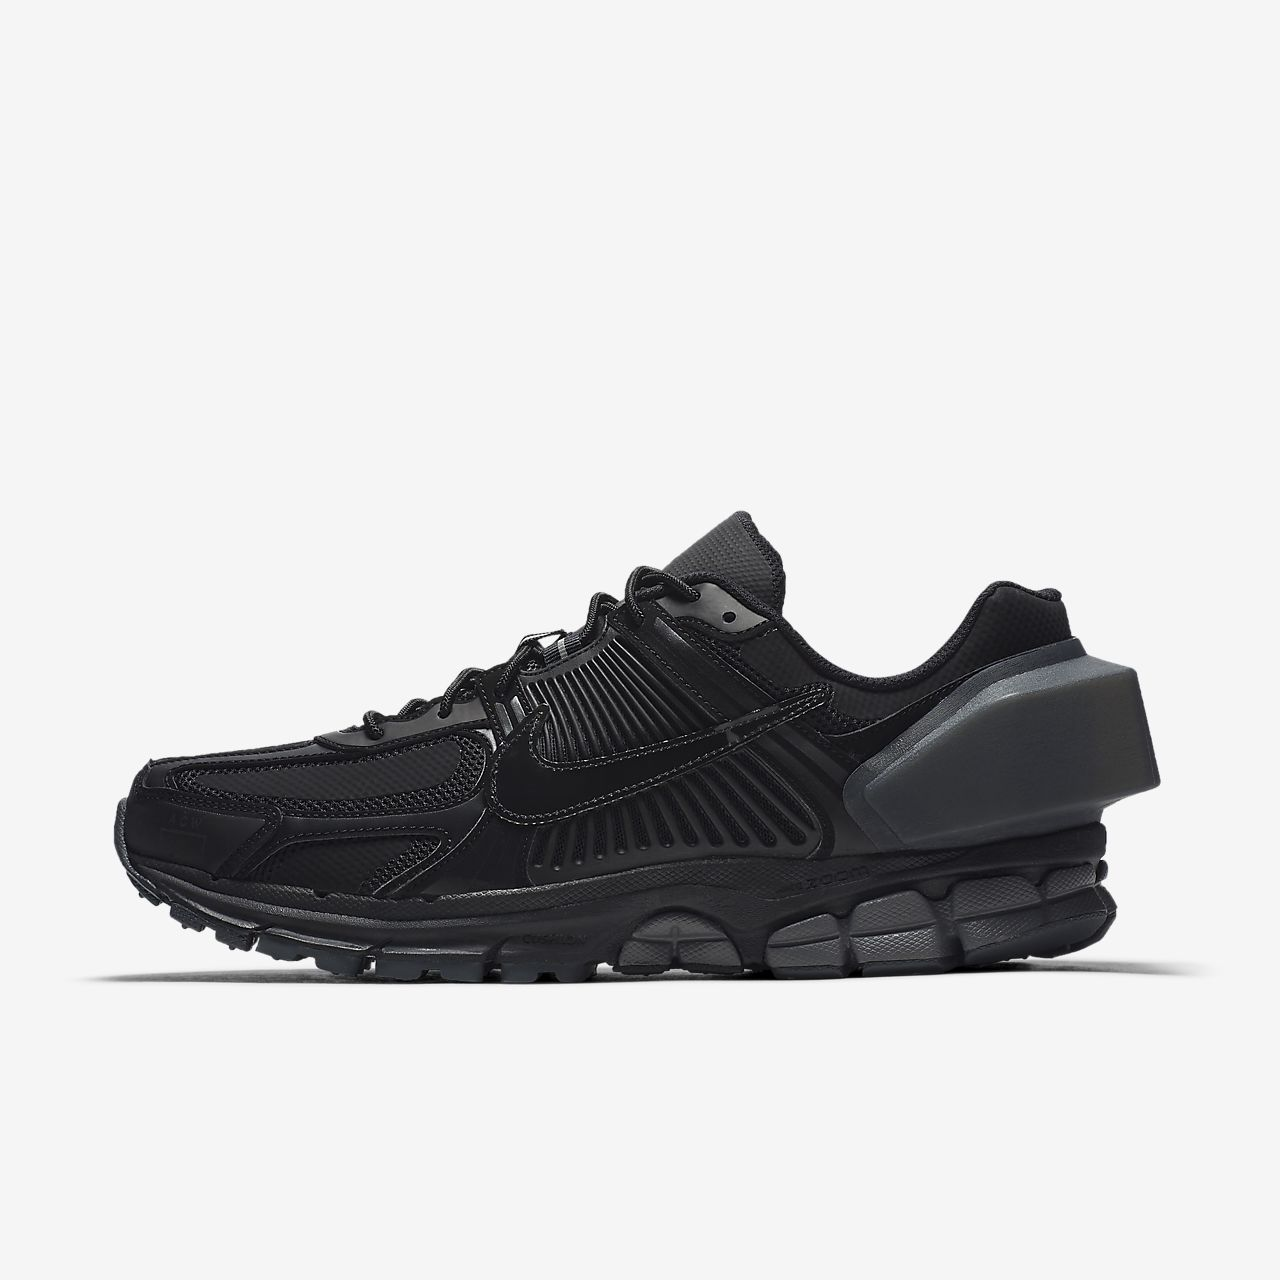 online retailer f0c93 5cb2d ... Buty Nike x A-COLD-WALL Zoom Vomero +5